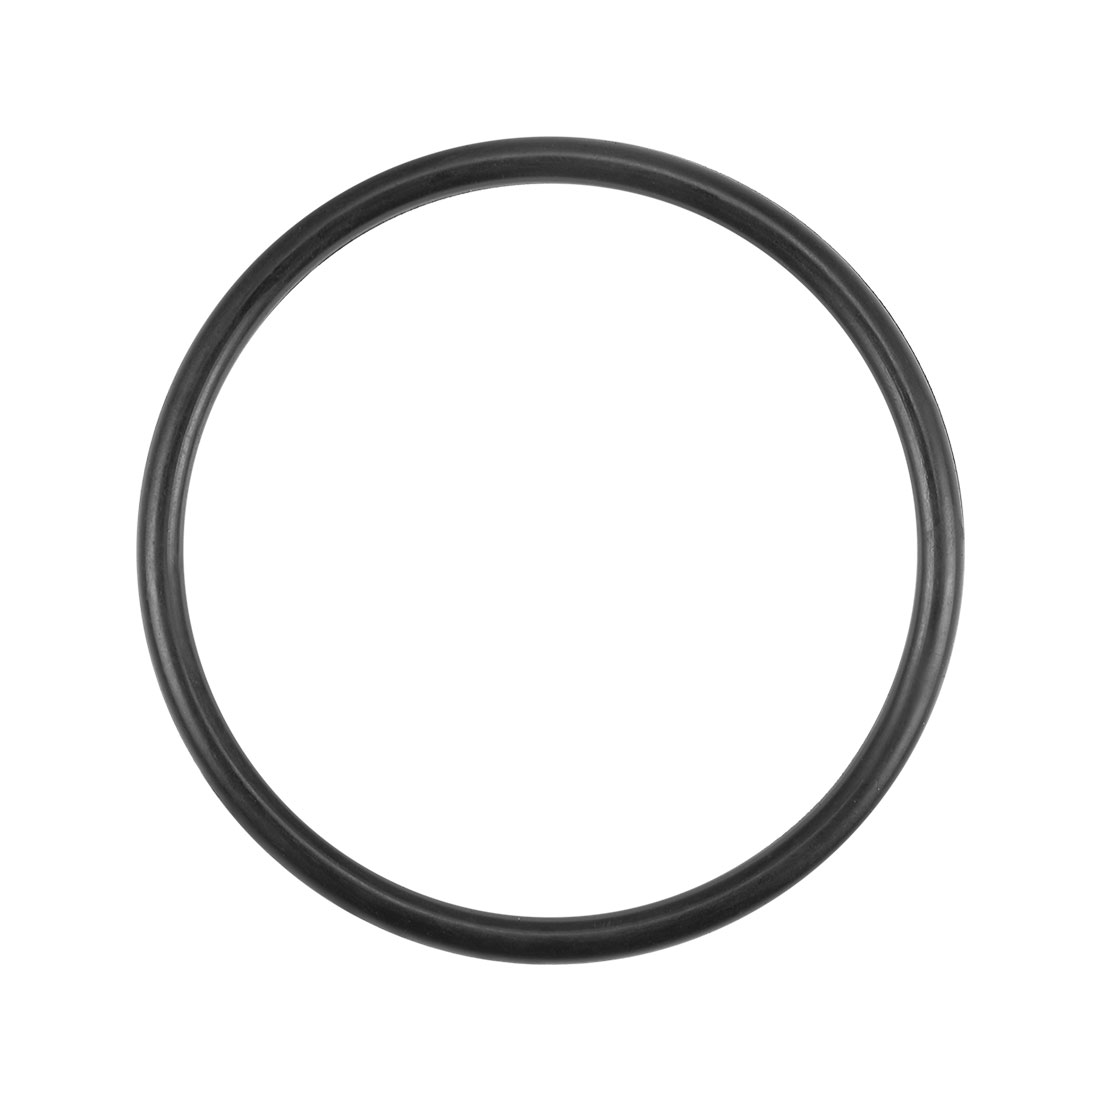 O-Rings Nitrile Rubber 24.5mm x 28.1mm x 1.8mm Round Seal Gasket 20Pcs